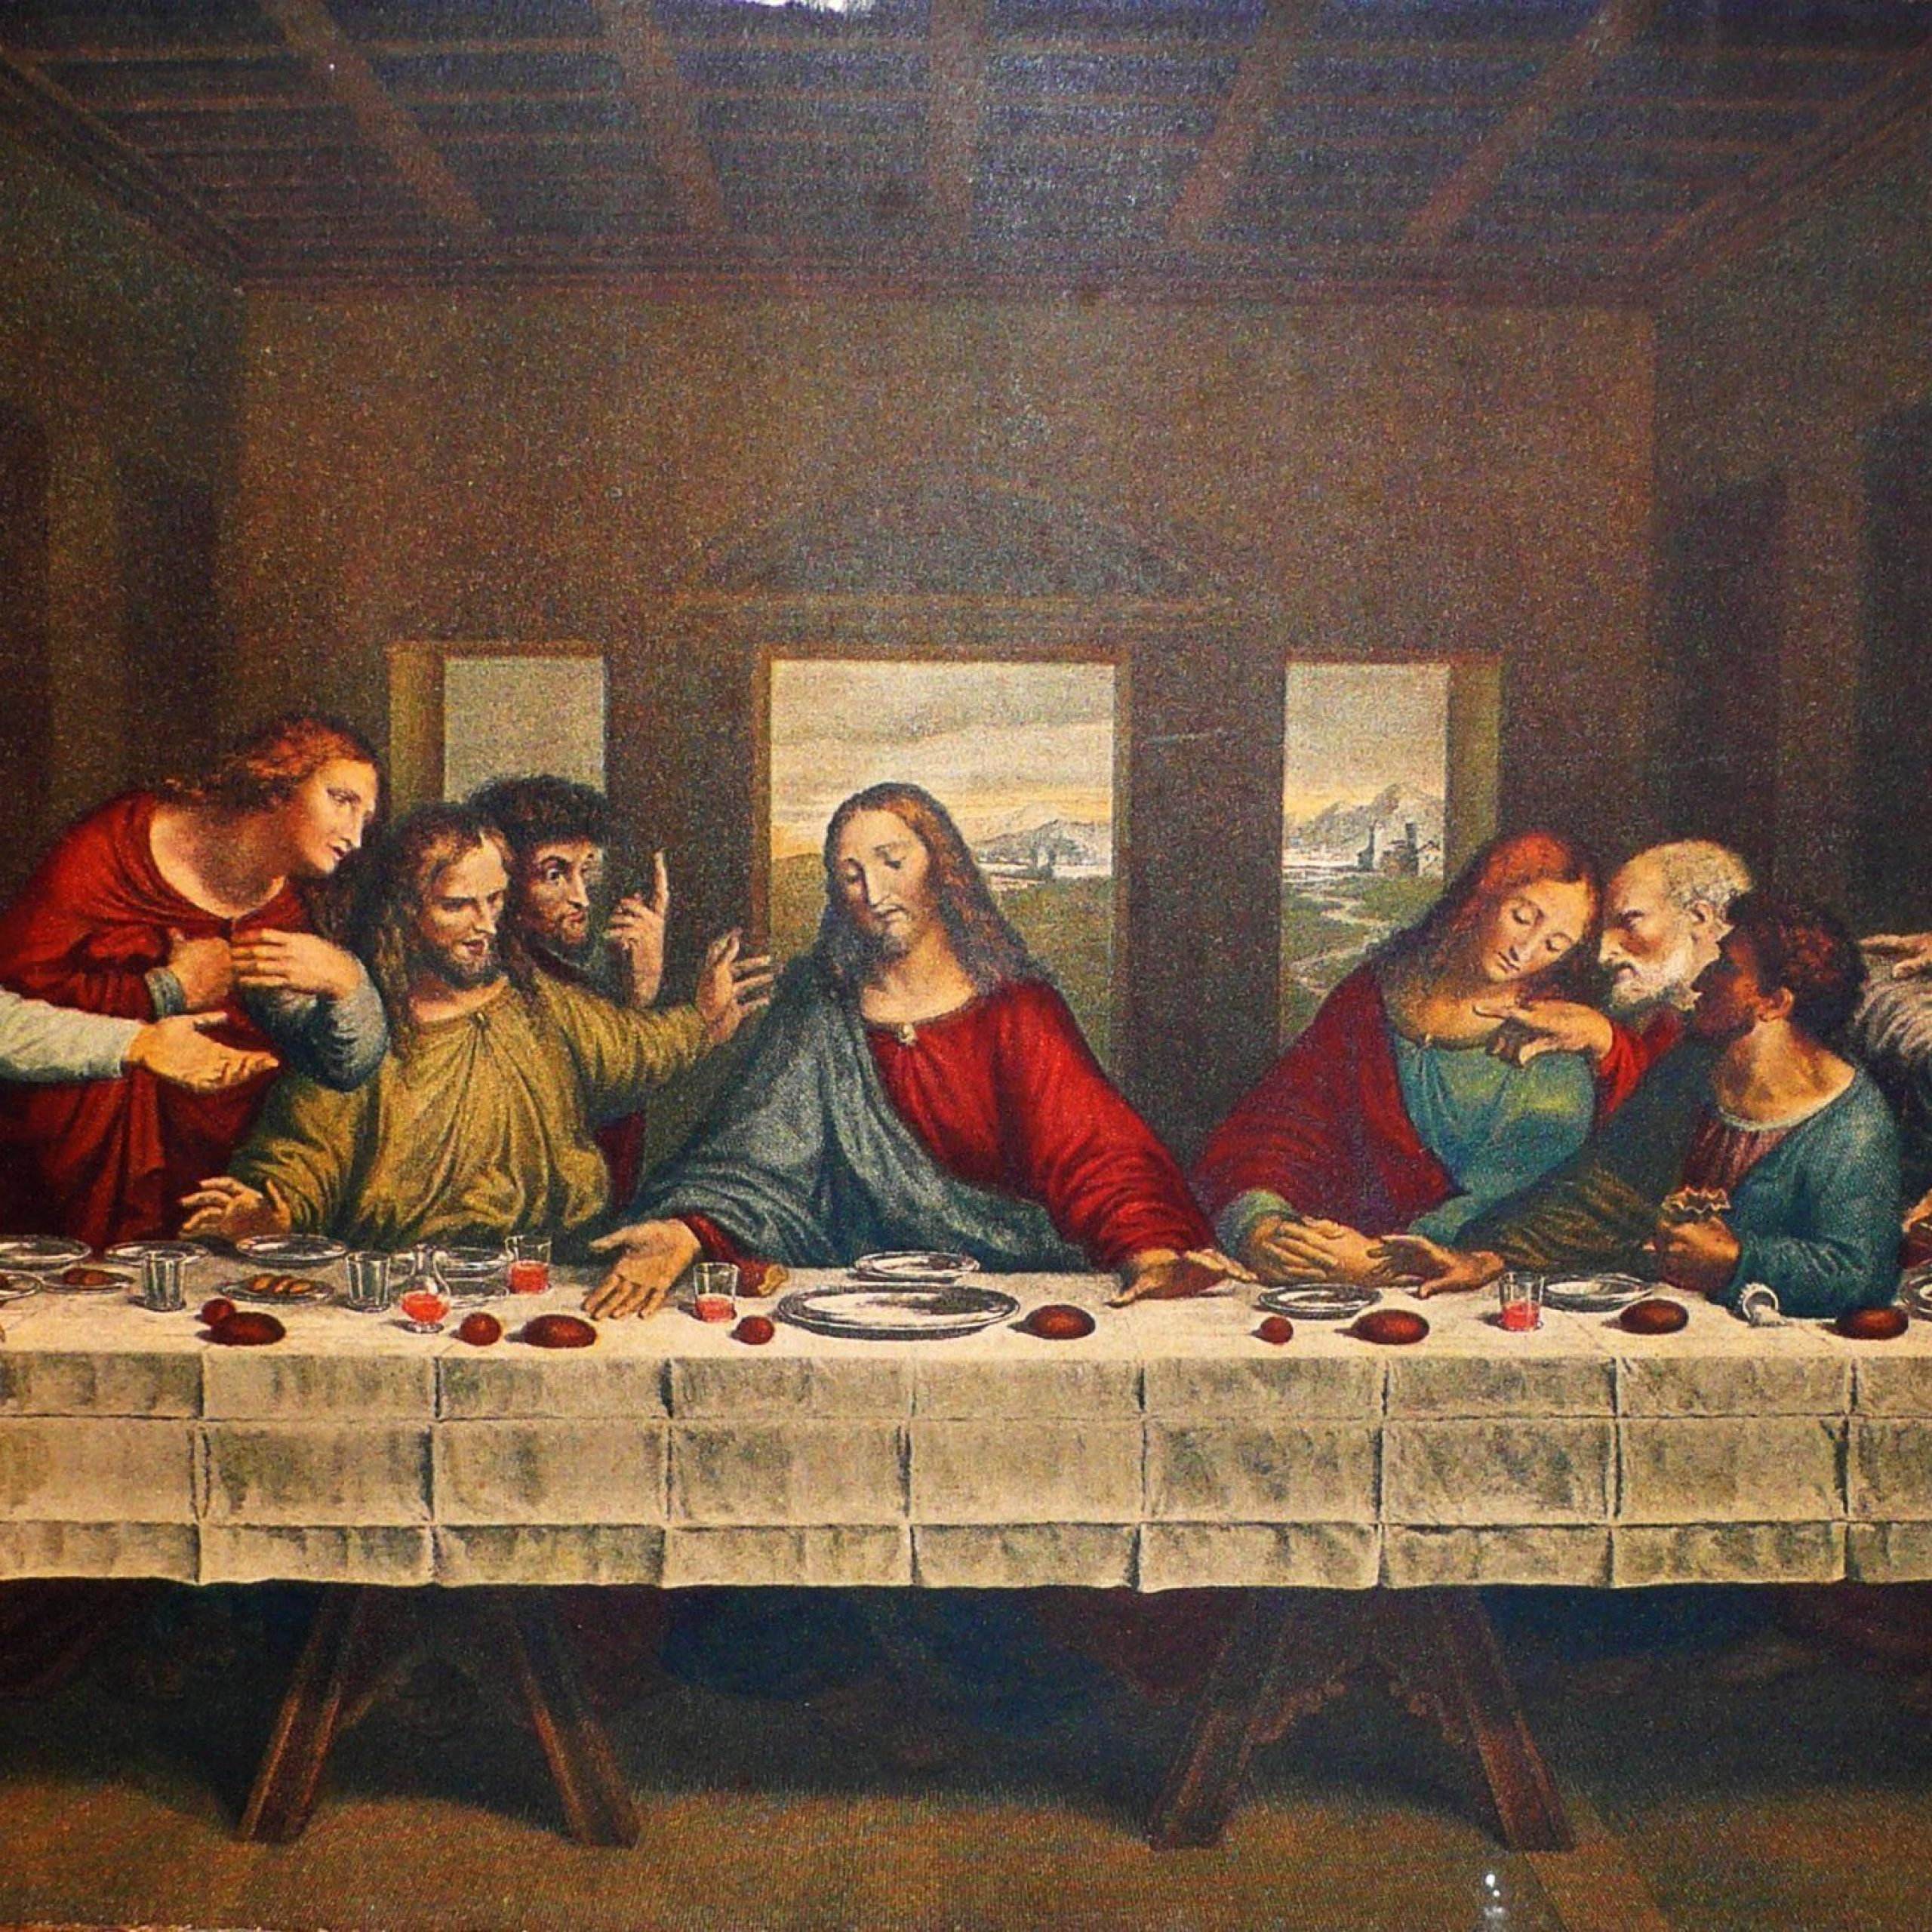 Blended Fabric Leonardo Davinci The Last Supper Wall Hangings Throughout Trendy The Last Supper Leonardo Da Vinci (View 7 of 20)